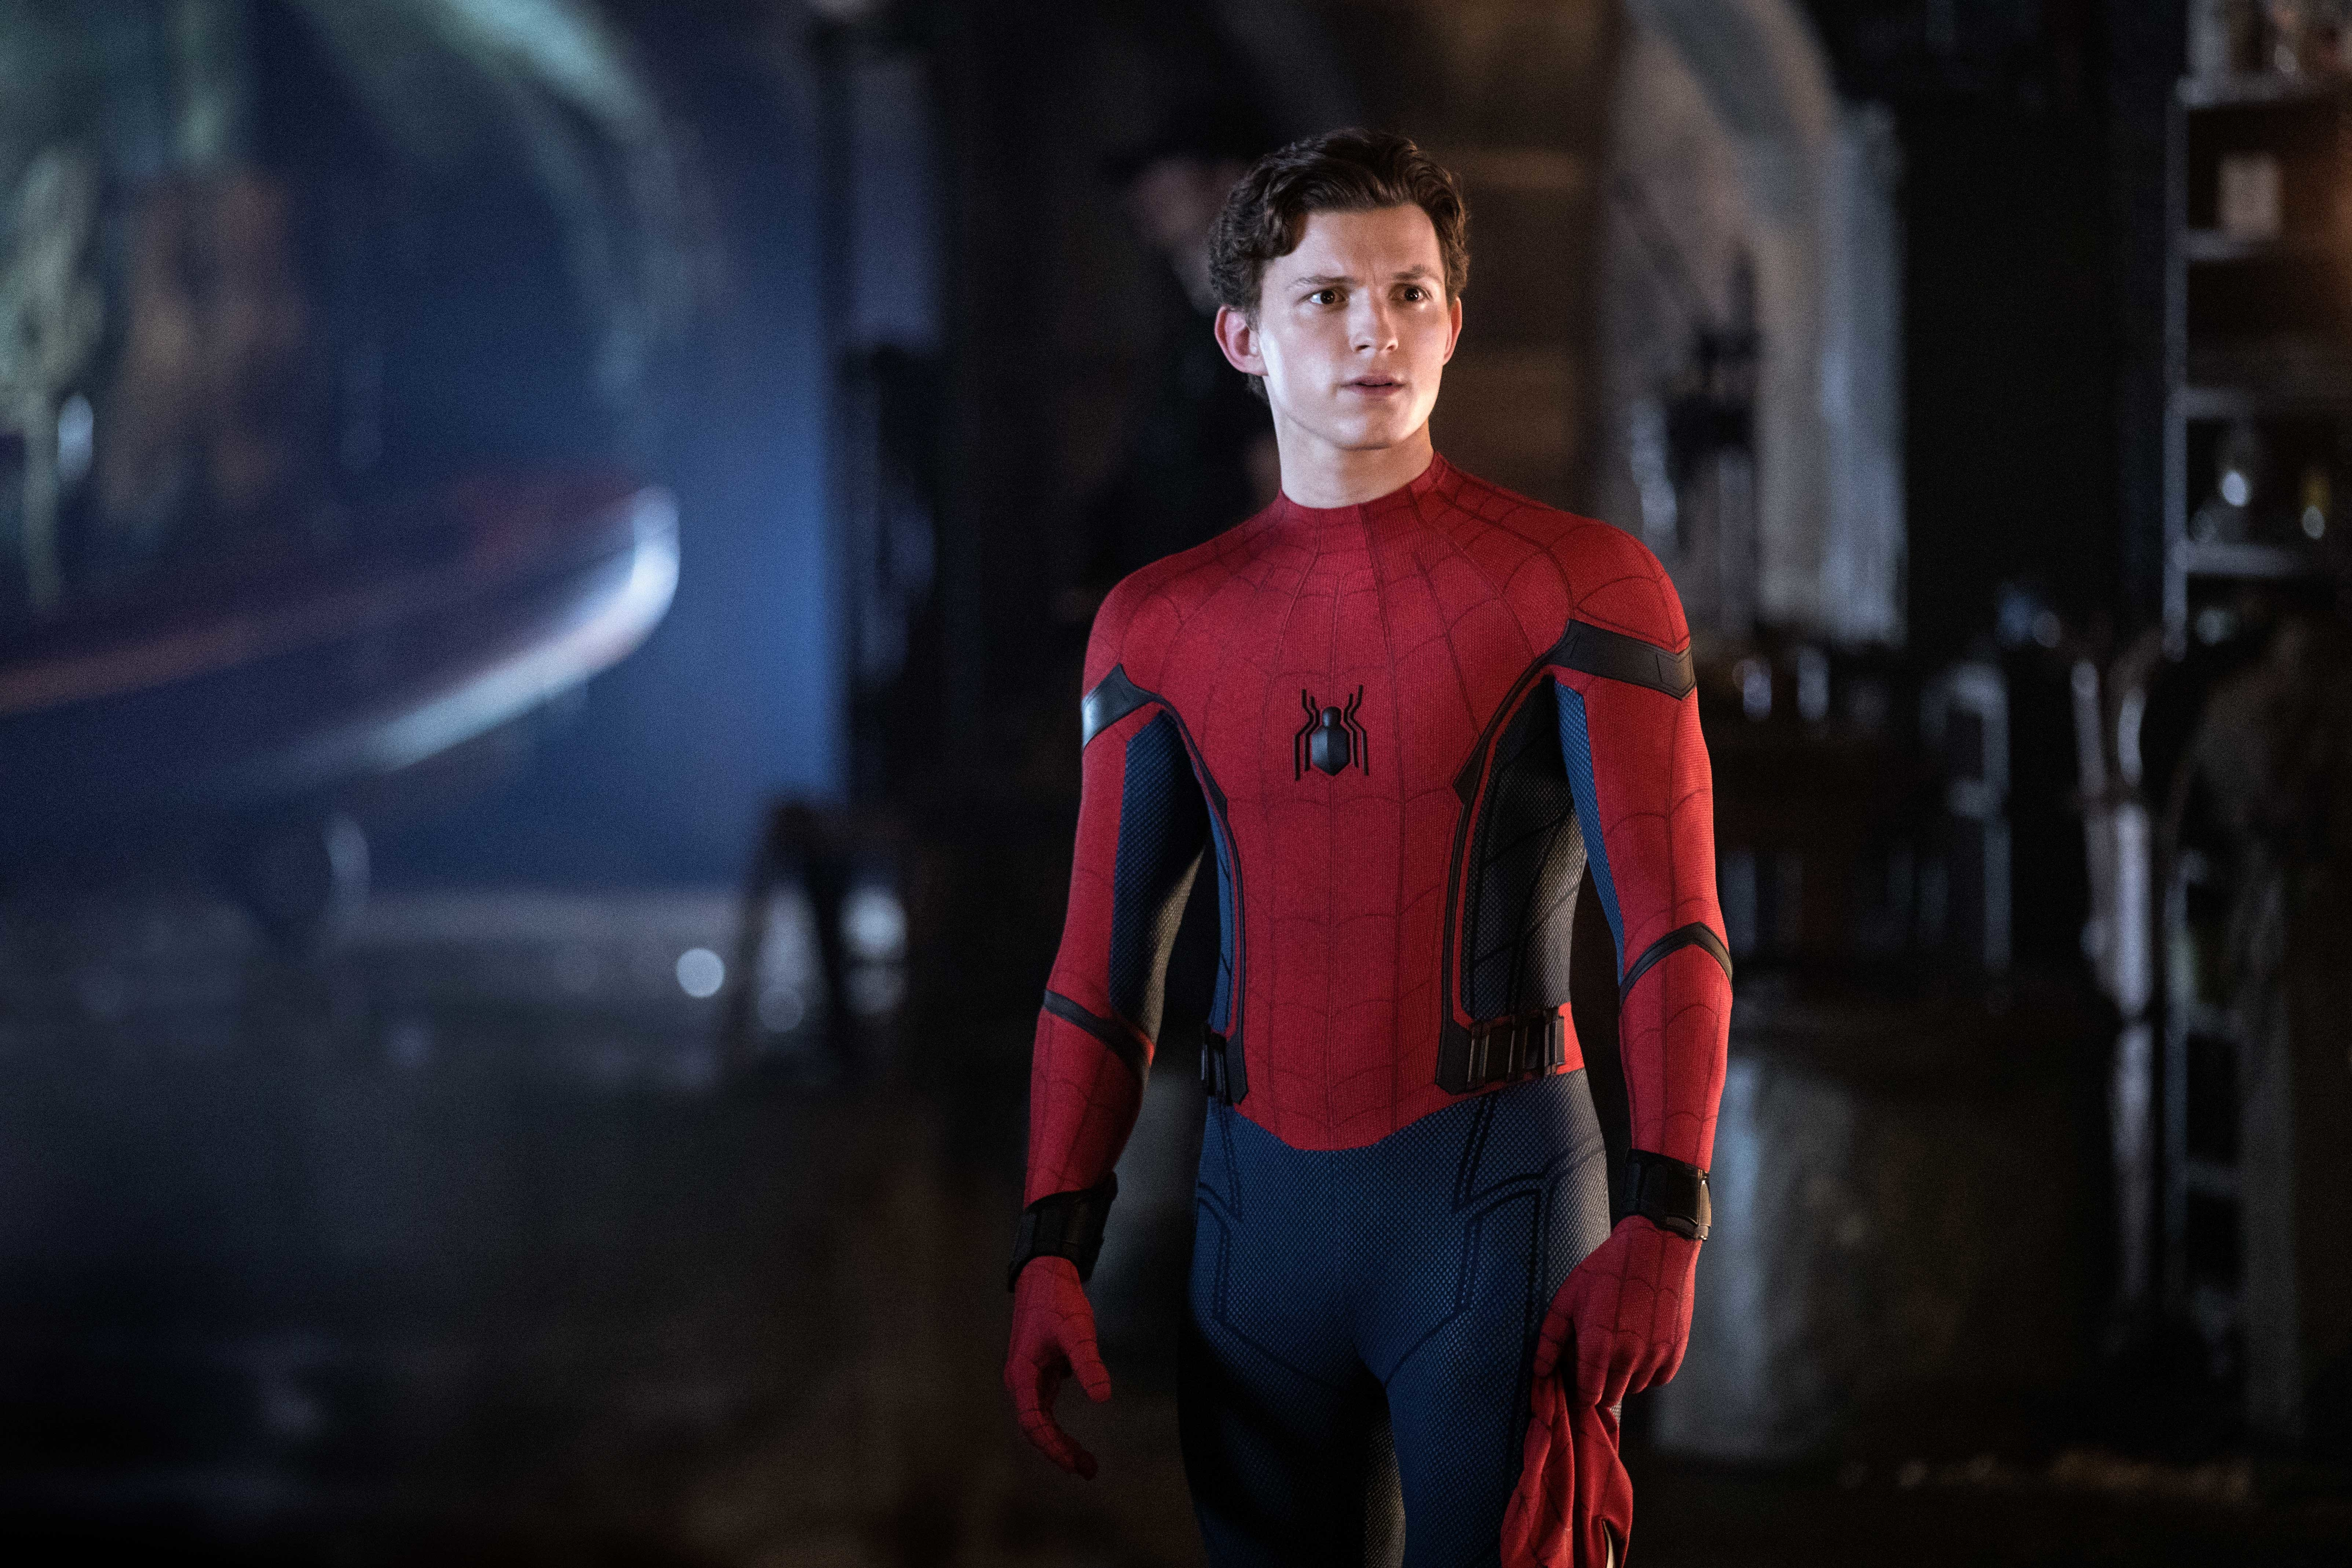 Spiderman Tom Holland Wallpaper Hd Tom holland wallpapers for your pc, android device, iphone or tablet pc. wallpaper iphone